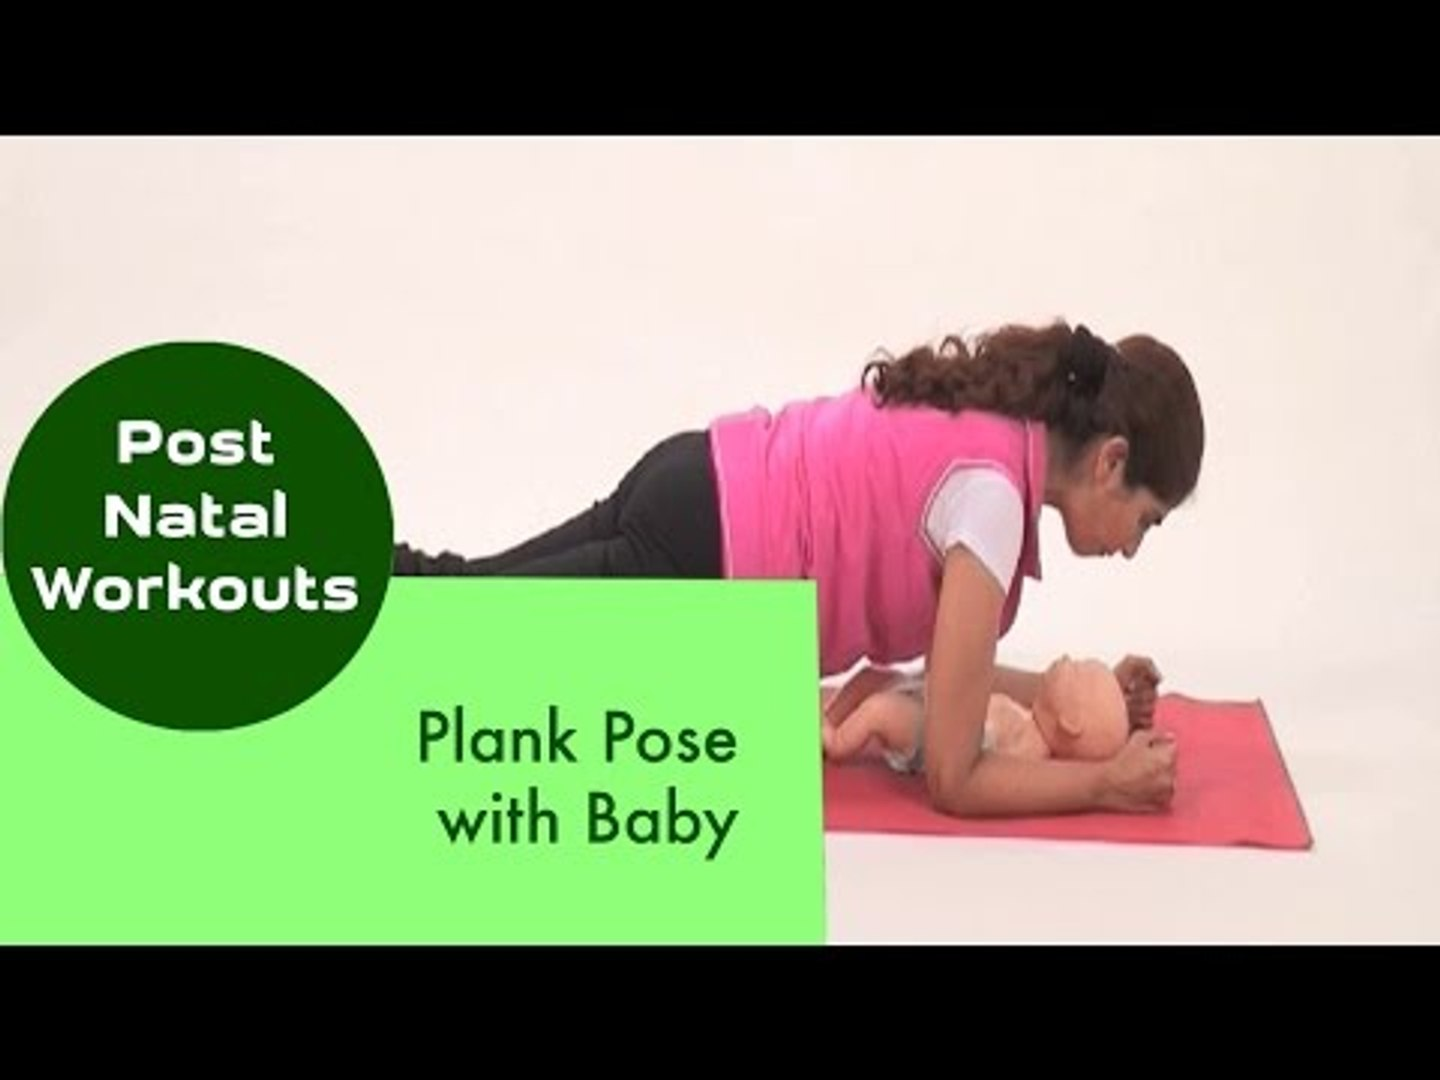 Plank Pose with Baby | Sonali Shivlani | Post Natal Workouts